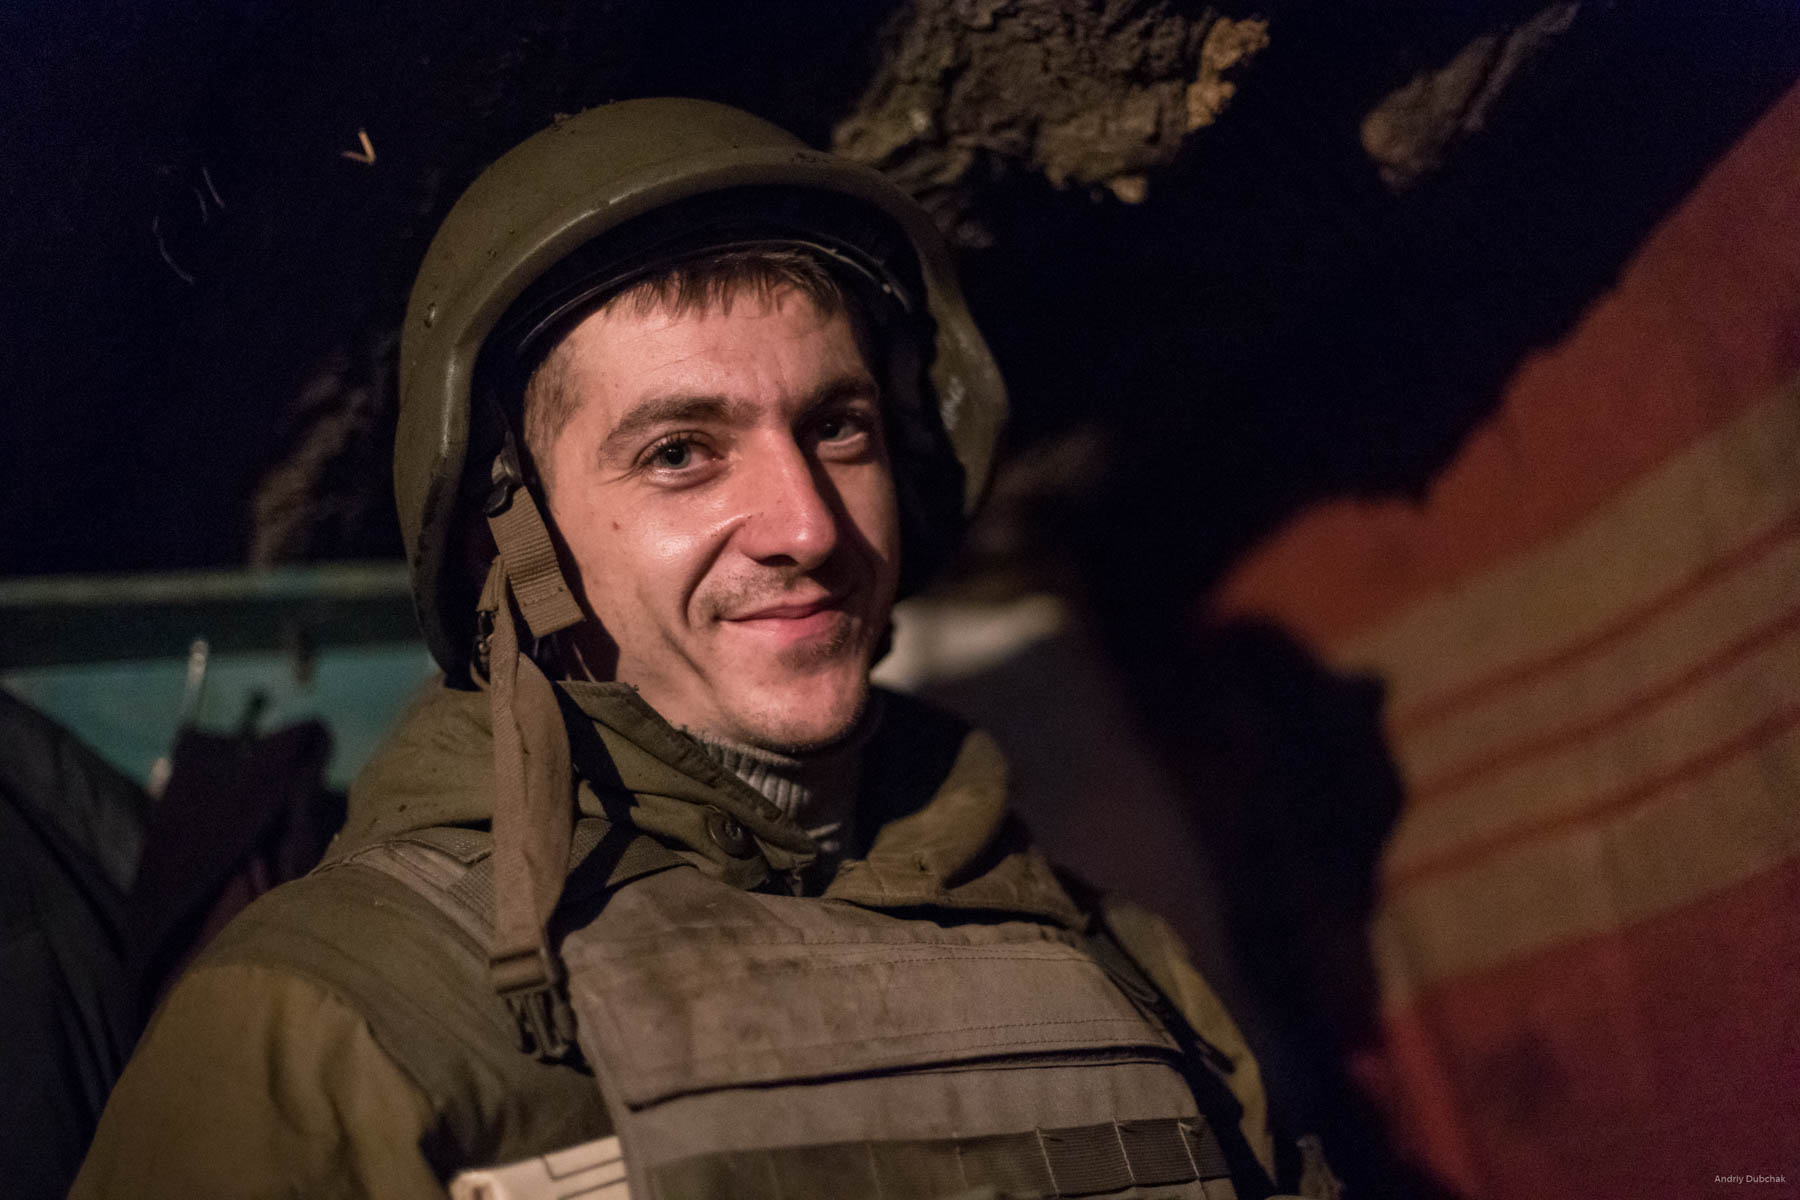 A fighter smiles, who came in for a moment to the dugout during a night battle, near Popasnaya, December 2017.